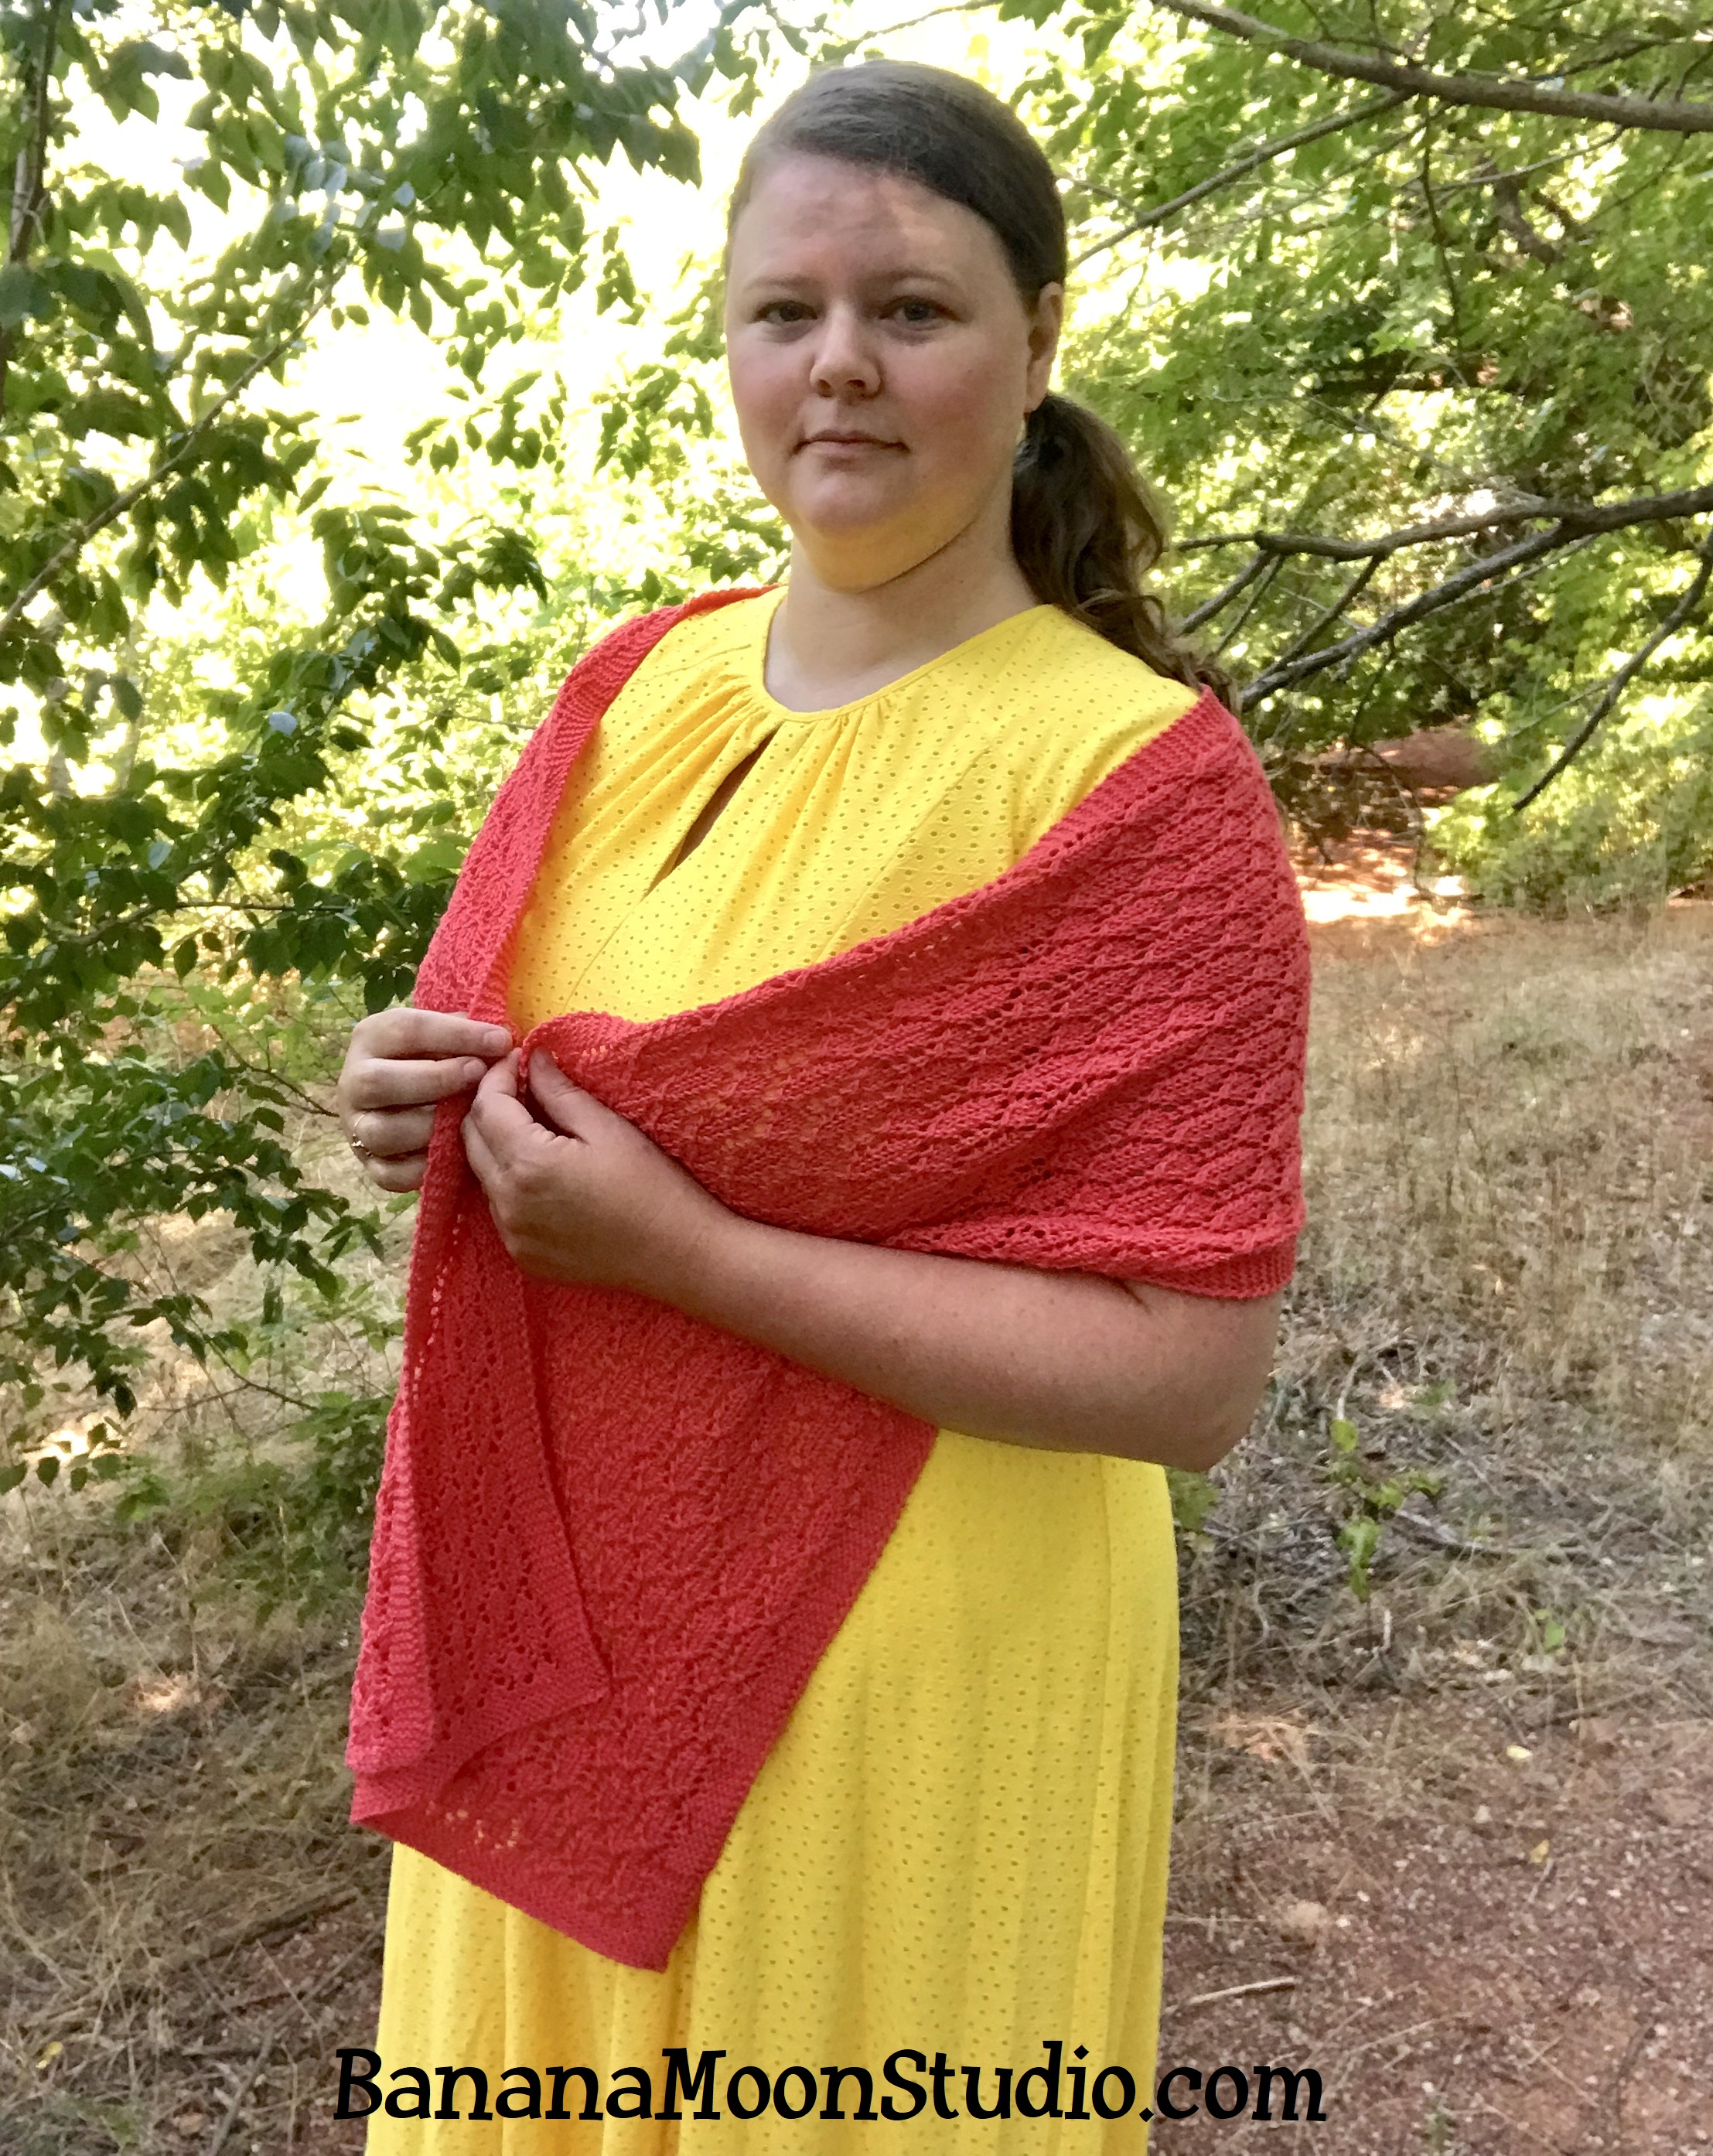 Free knitting pattern for a cotton lace wrap, from Banana Moon Studio